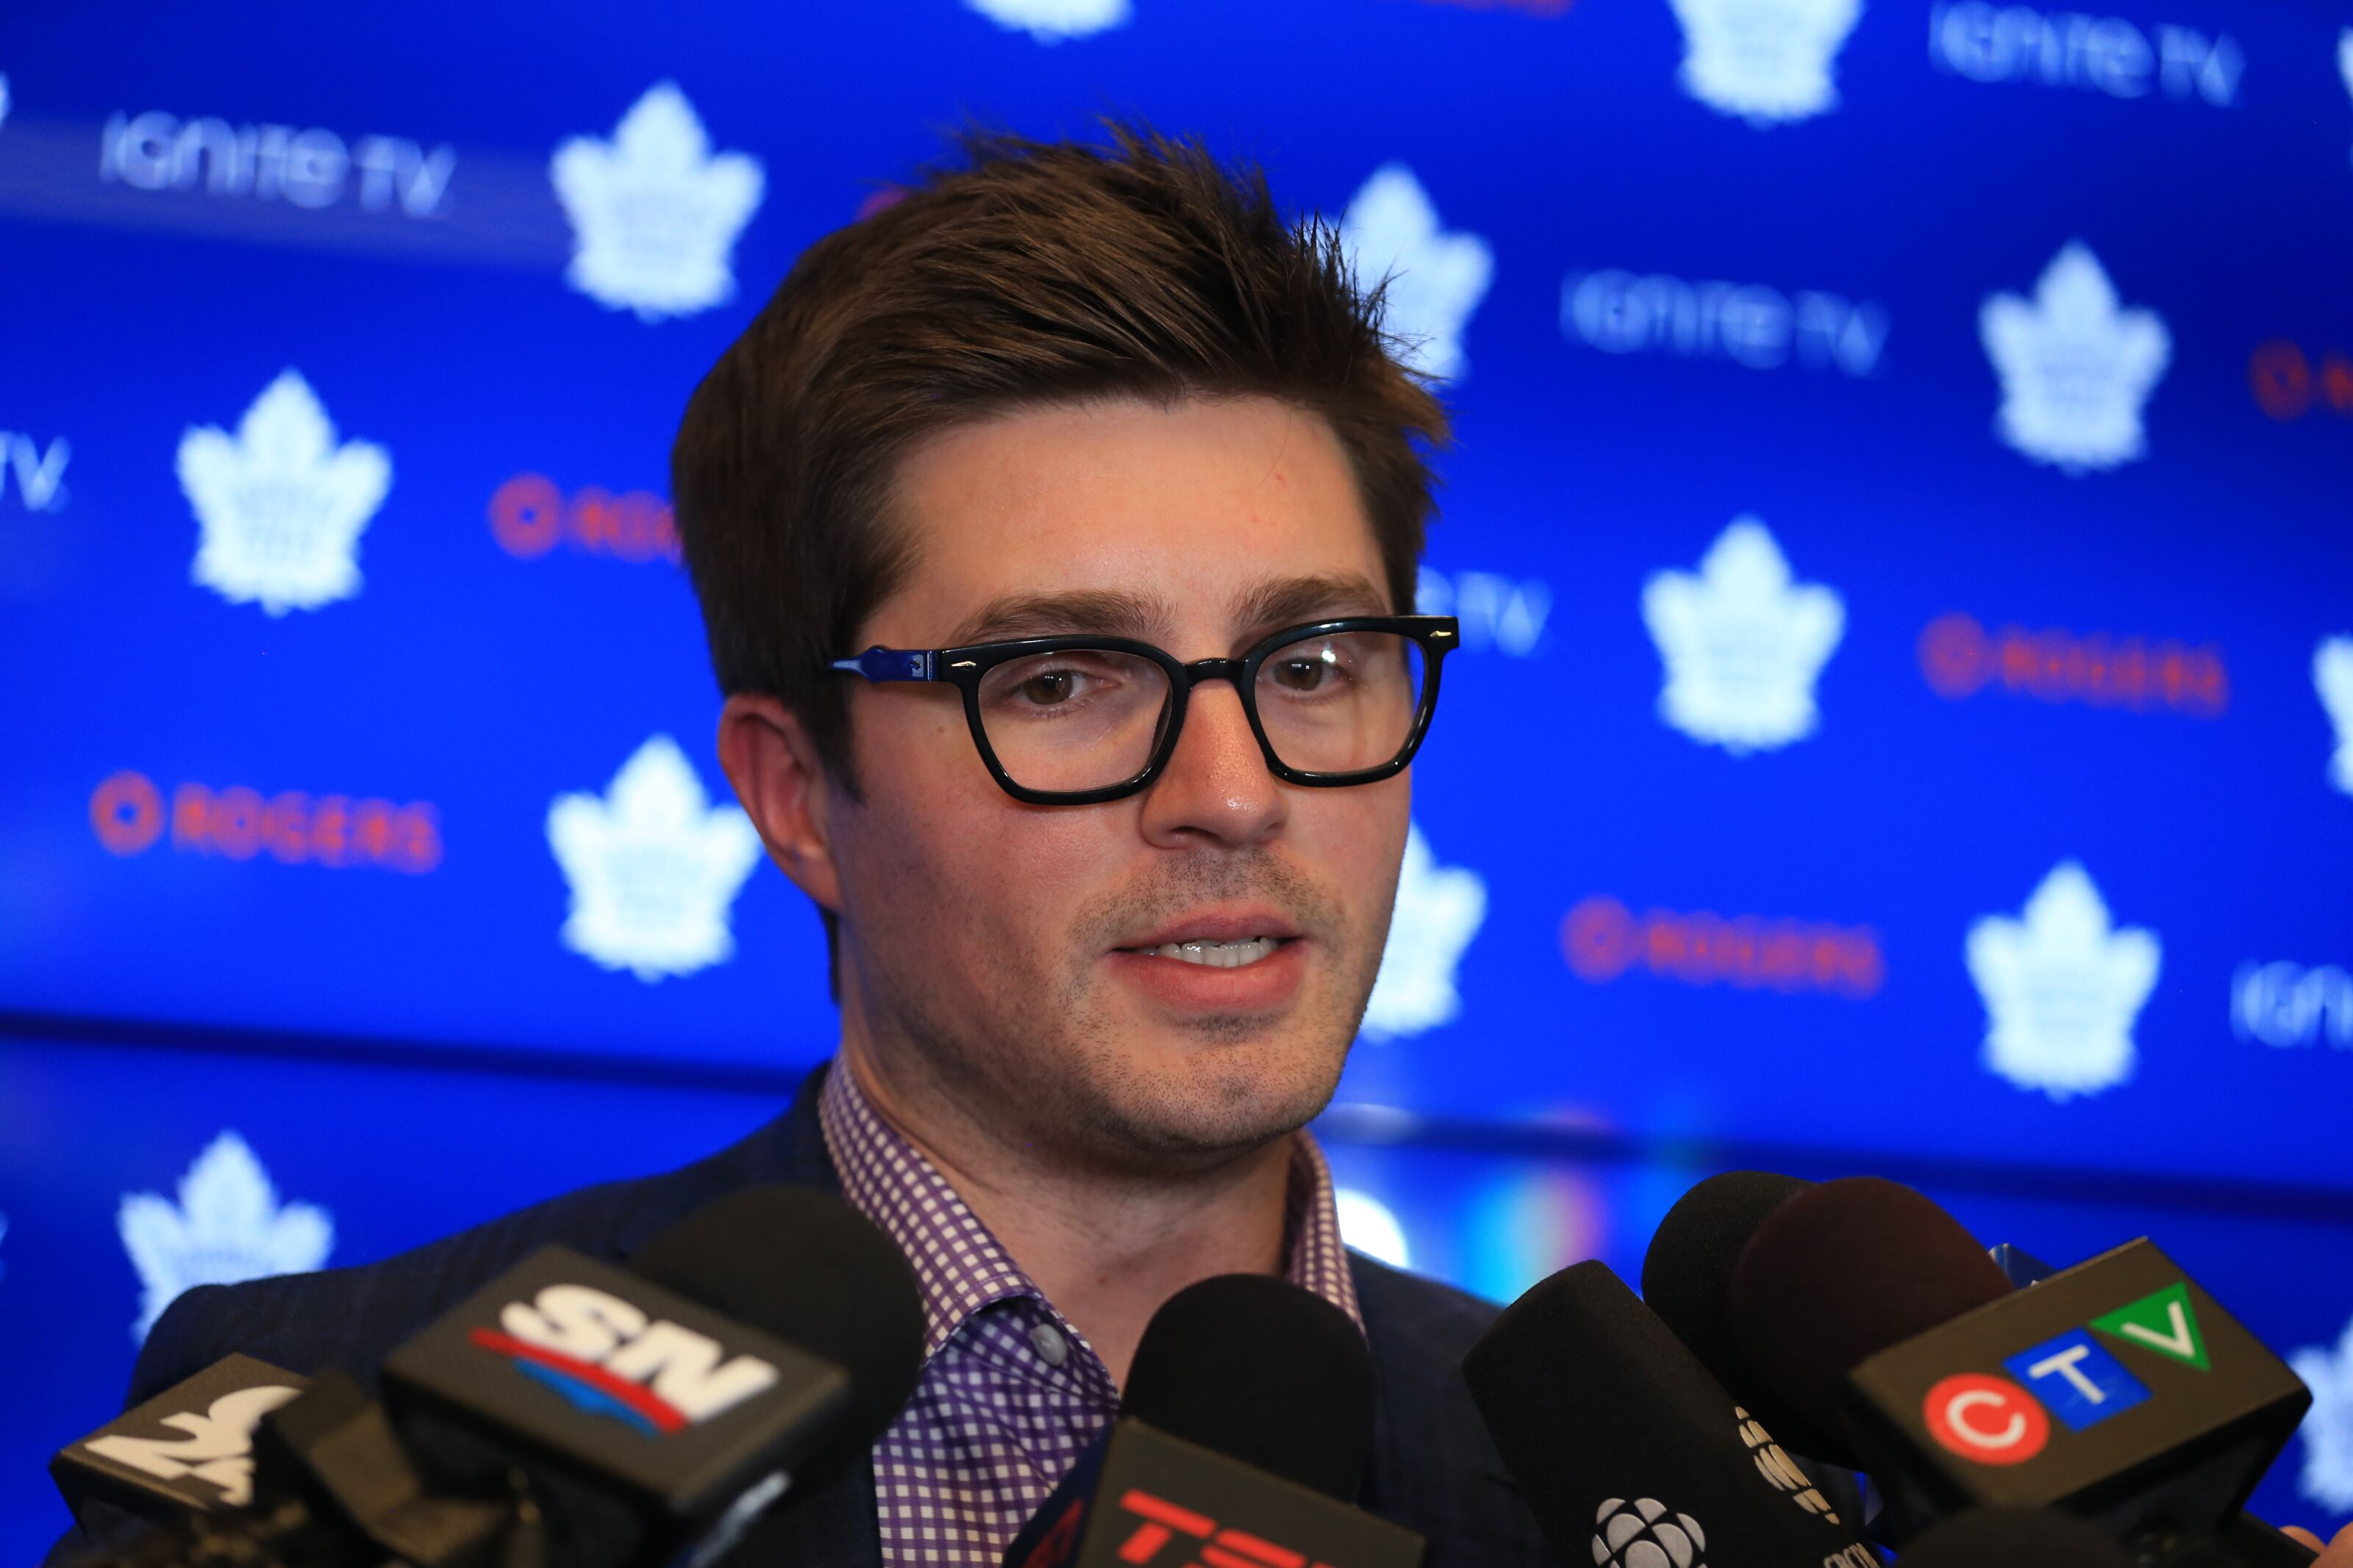 Toronto Maple Leafs: Kyle Dubas Biggest Mistake